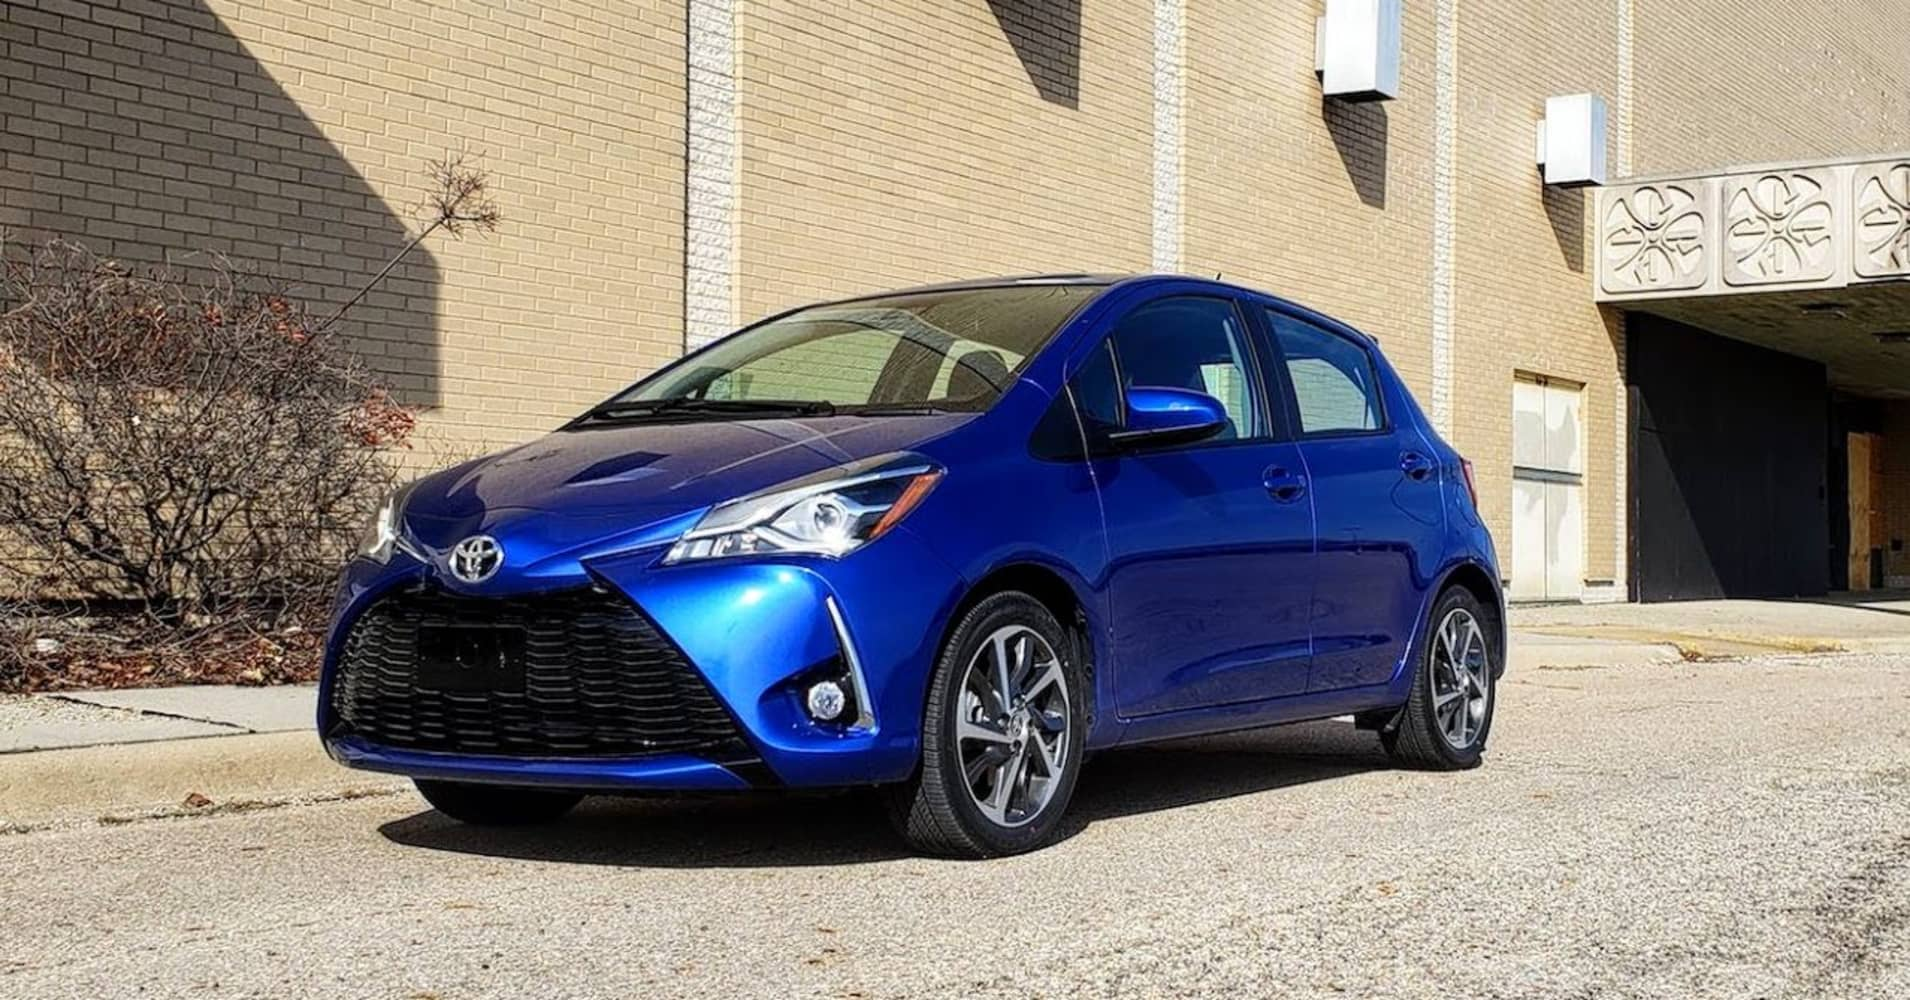 the 2018 toyota yaris 5 door is cheap noisy and unrefined toyota nation forum toyota car. Black Bedroom Furniture Sets. Home Design Ideas